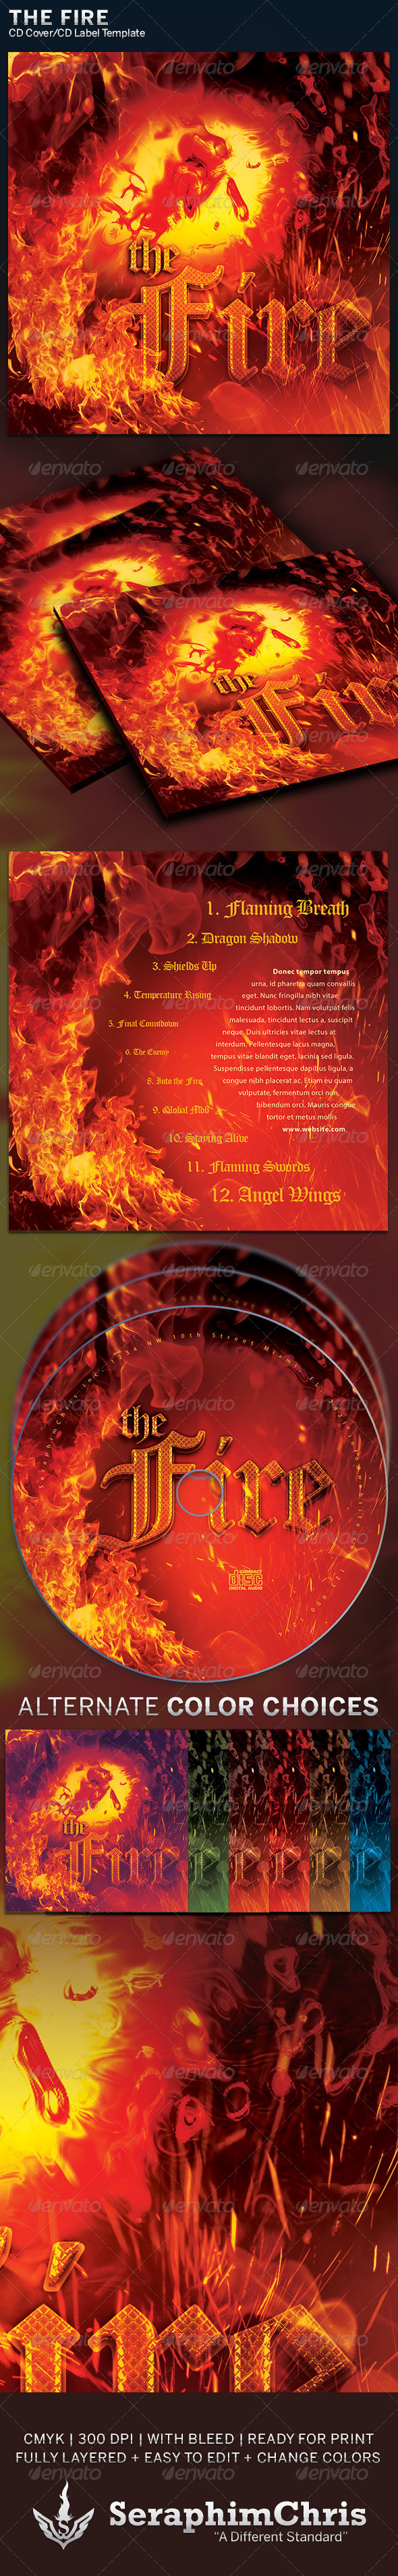 The Fire: CD Cover Artwork Template - CD & DVD Artwork Print Templates